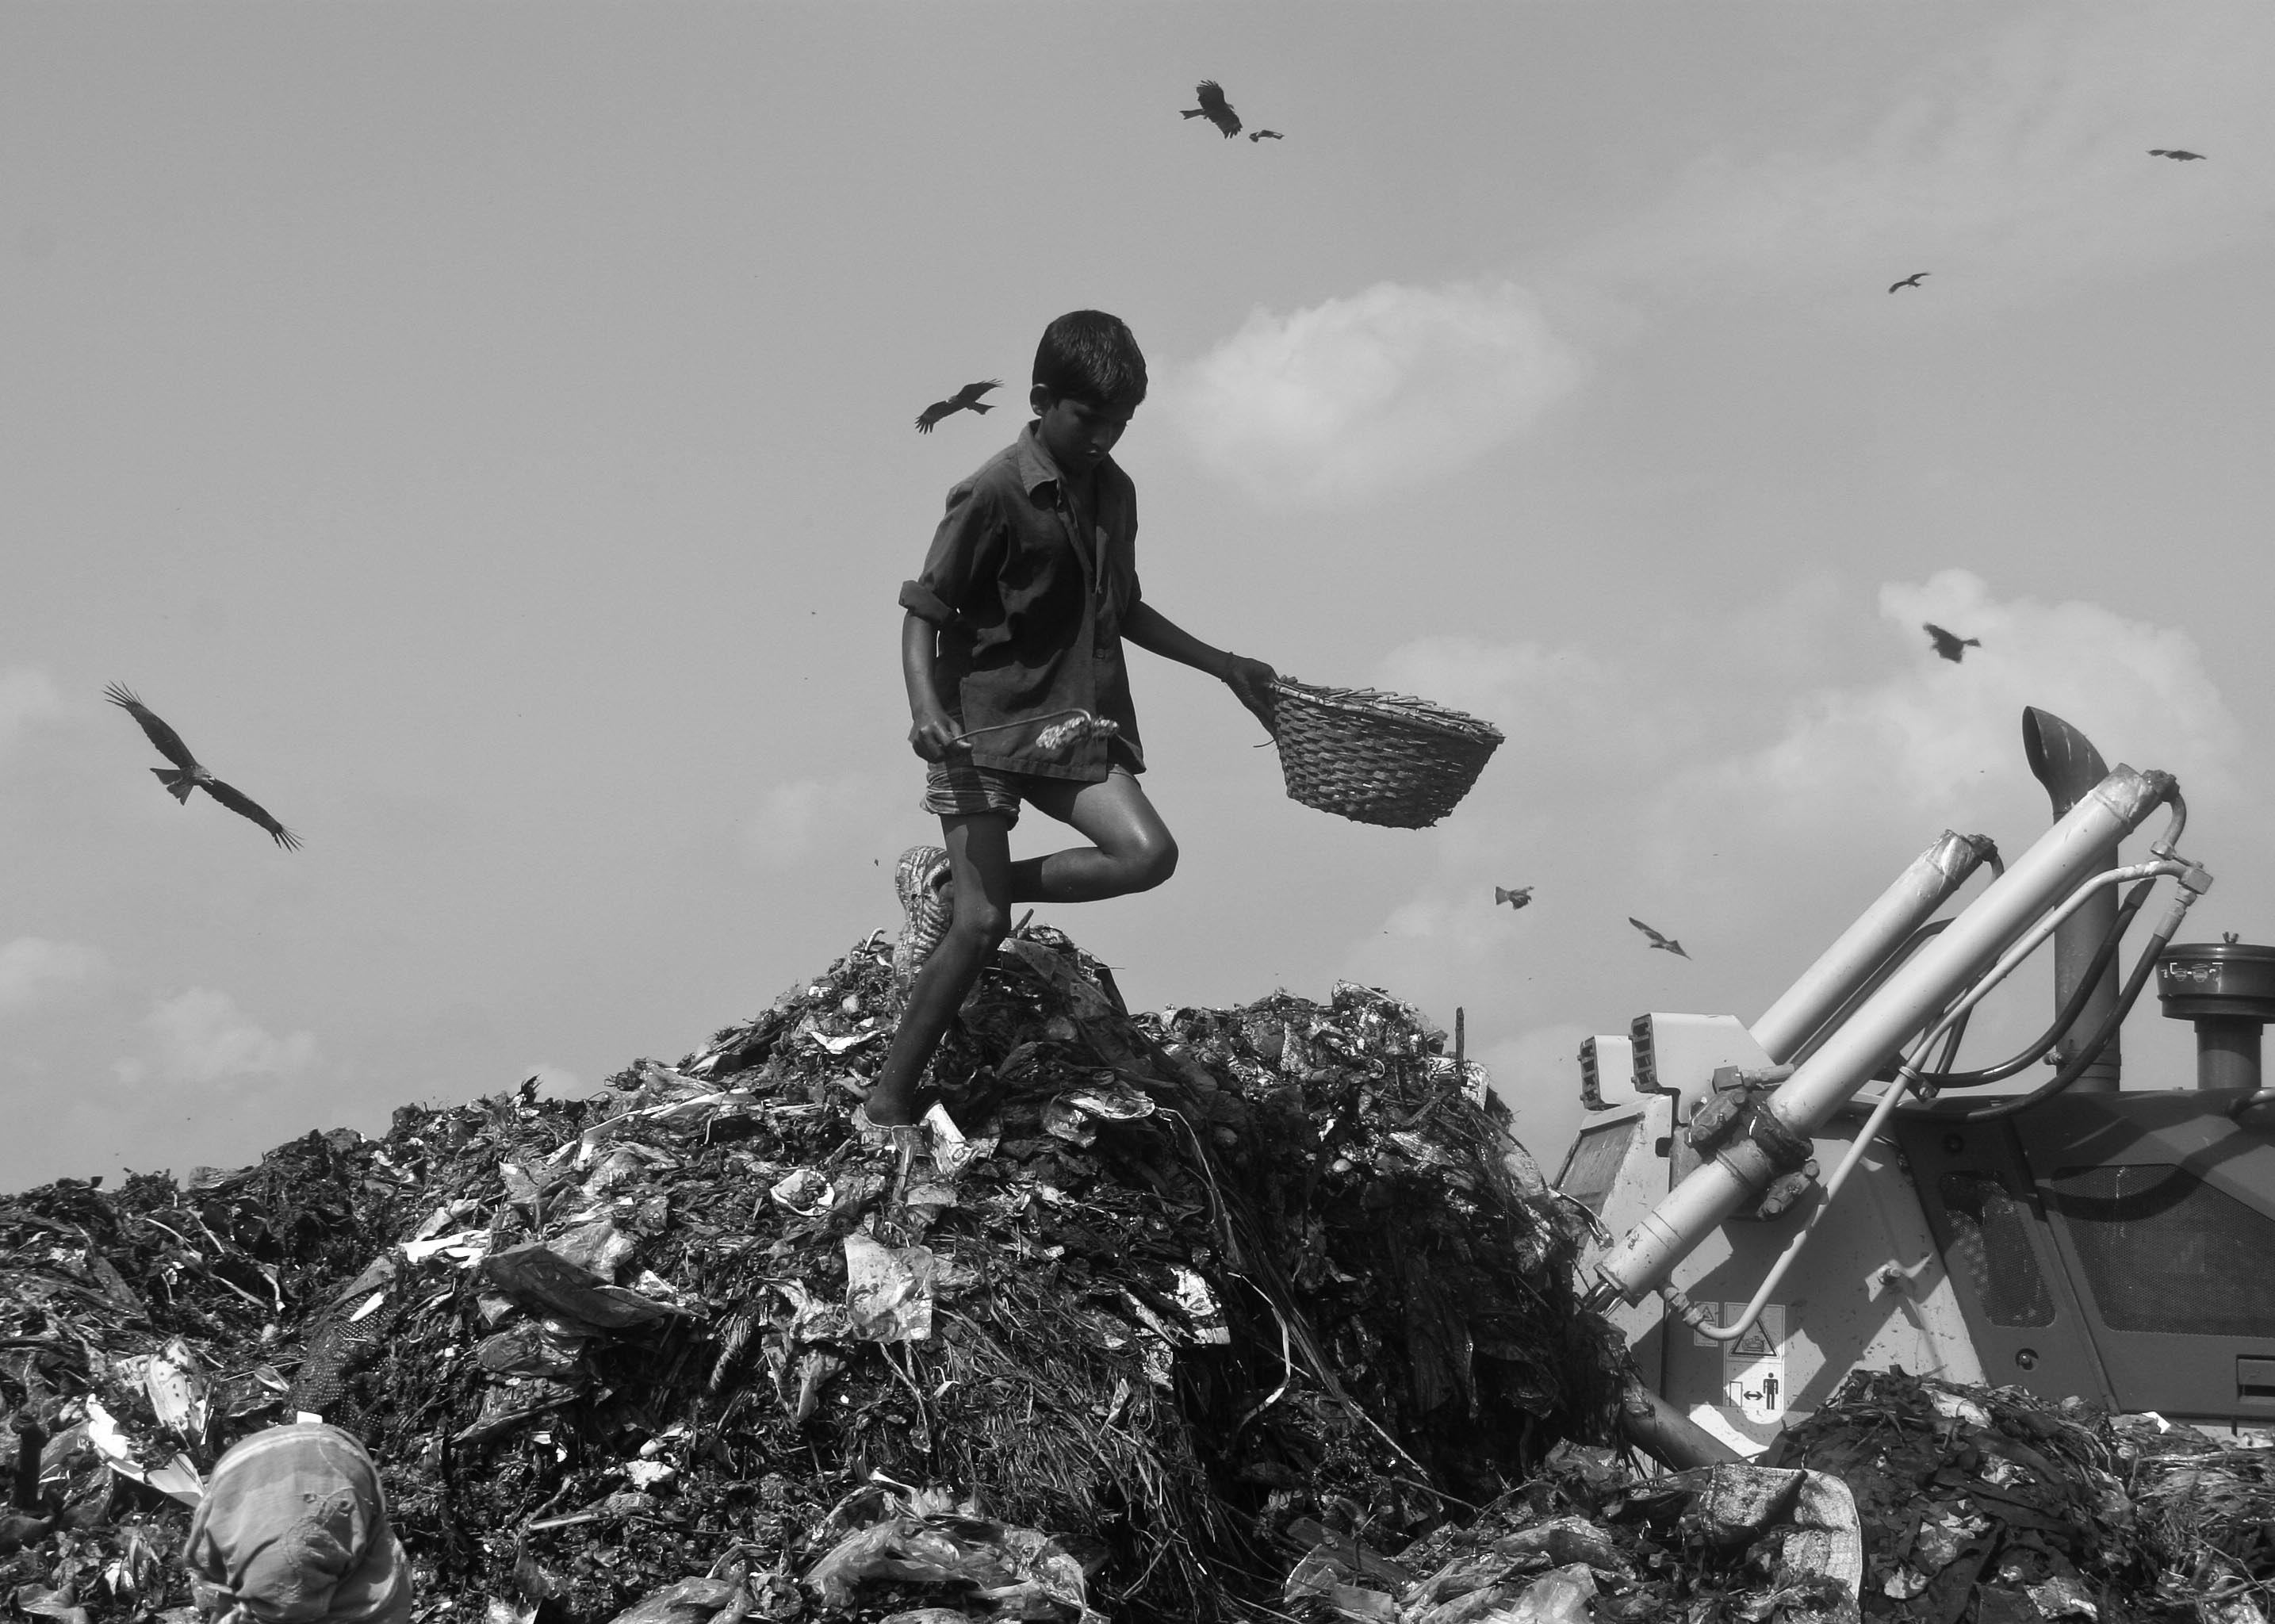 household waste management in dhaka city List of waste and recycling companies, manufacturers and suppliers in bangladesh | environmental xprt.